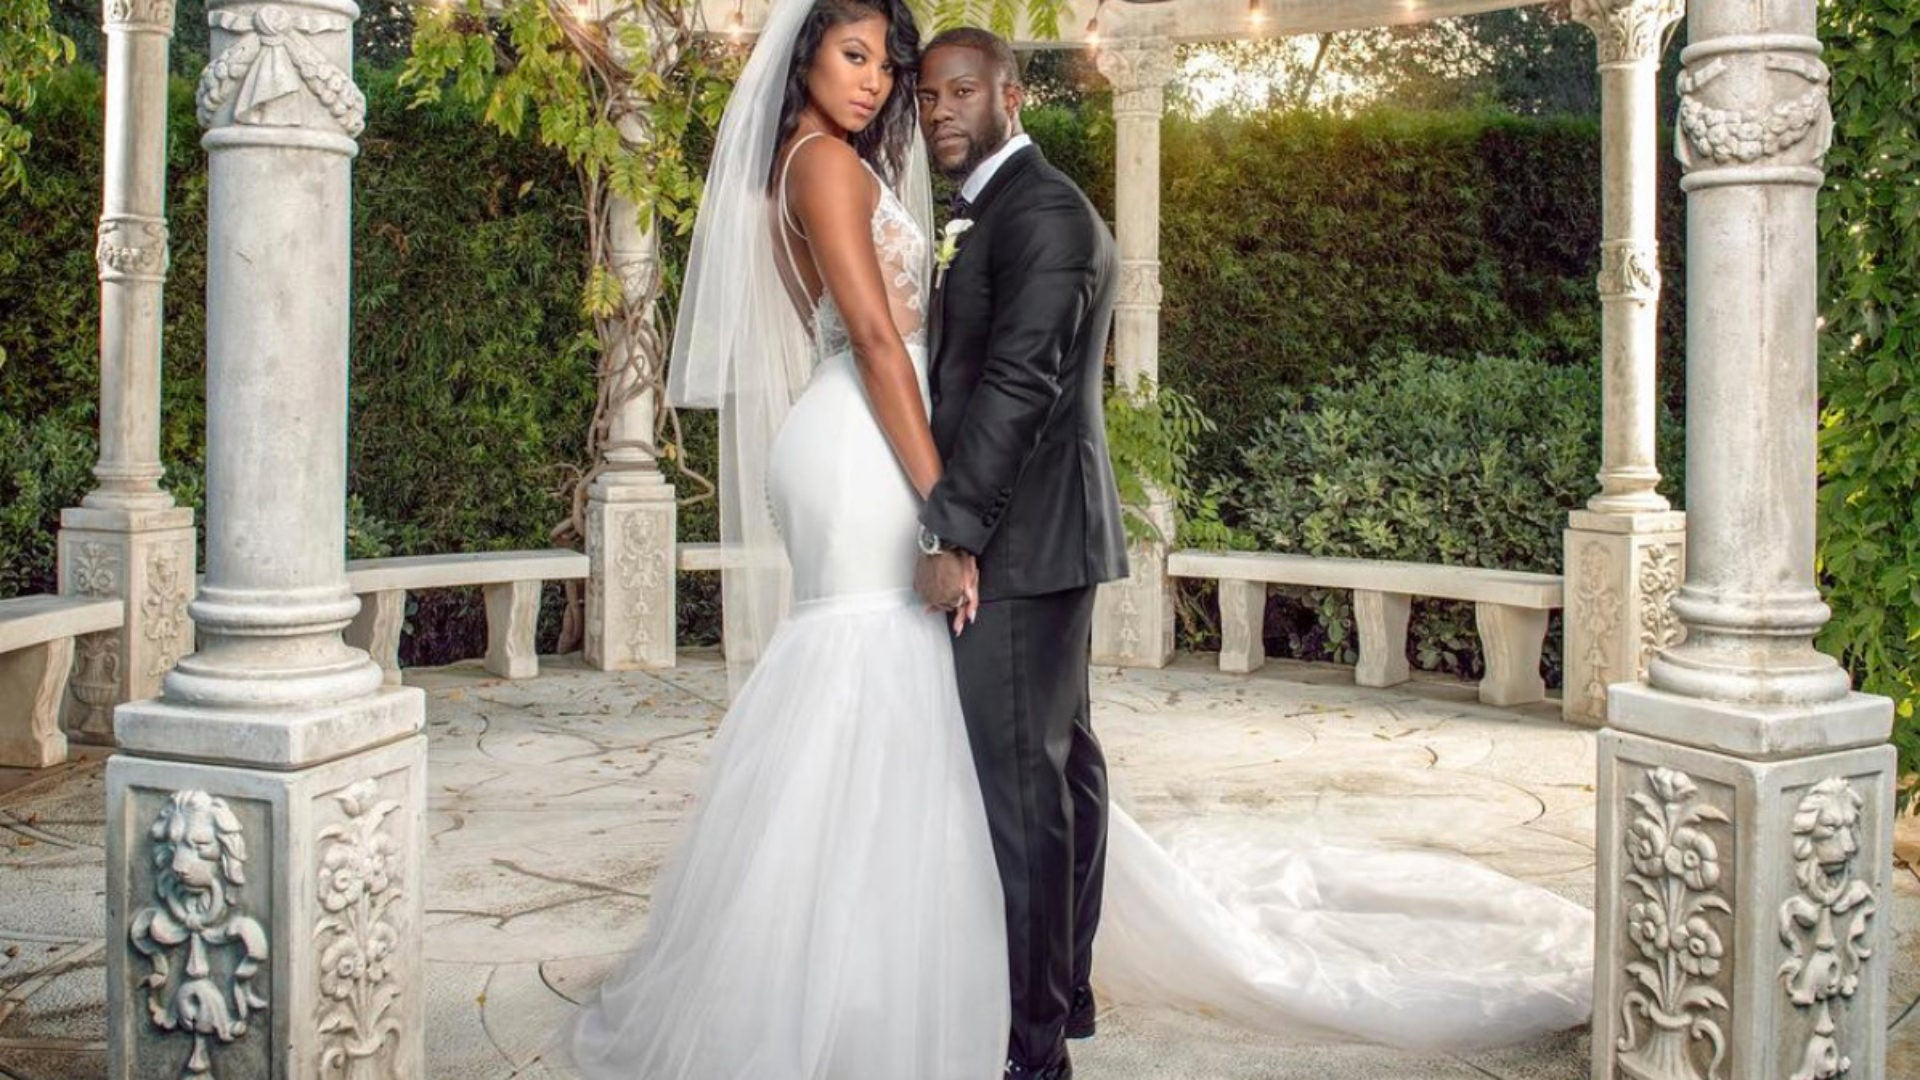 Kevin Hart and Wife Eniko Parrish Are Expecting Their First Child Together